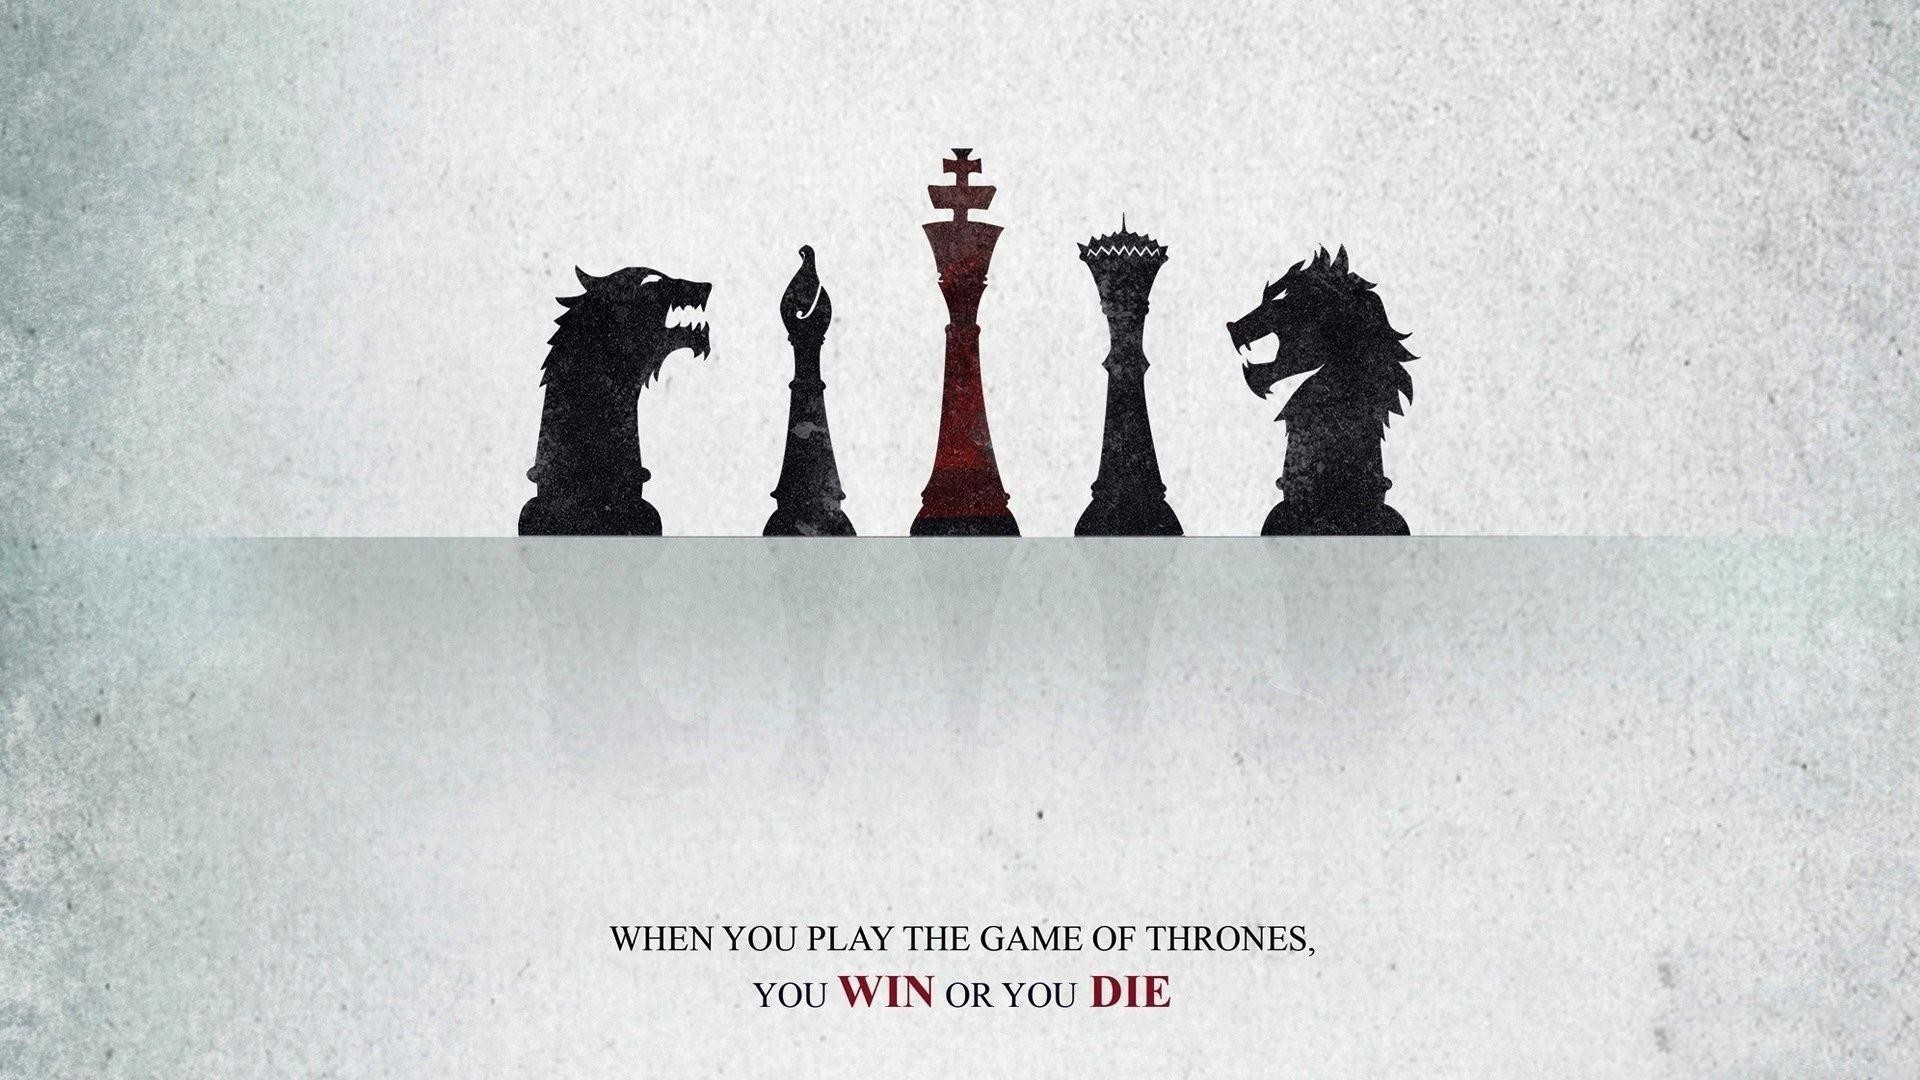 Attitude Quotes Hd Wallpapers - You Play The Game Of Thrones You Win Or You Die - HD Wallpaper